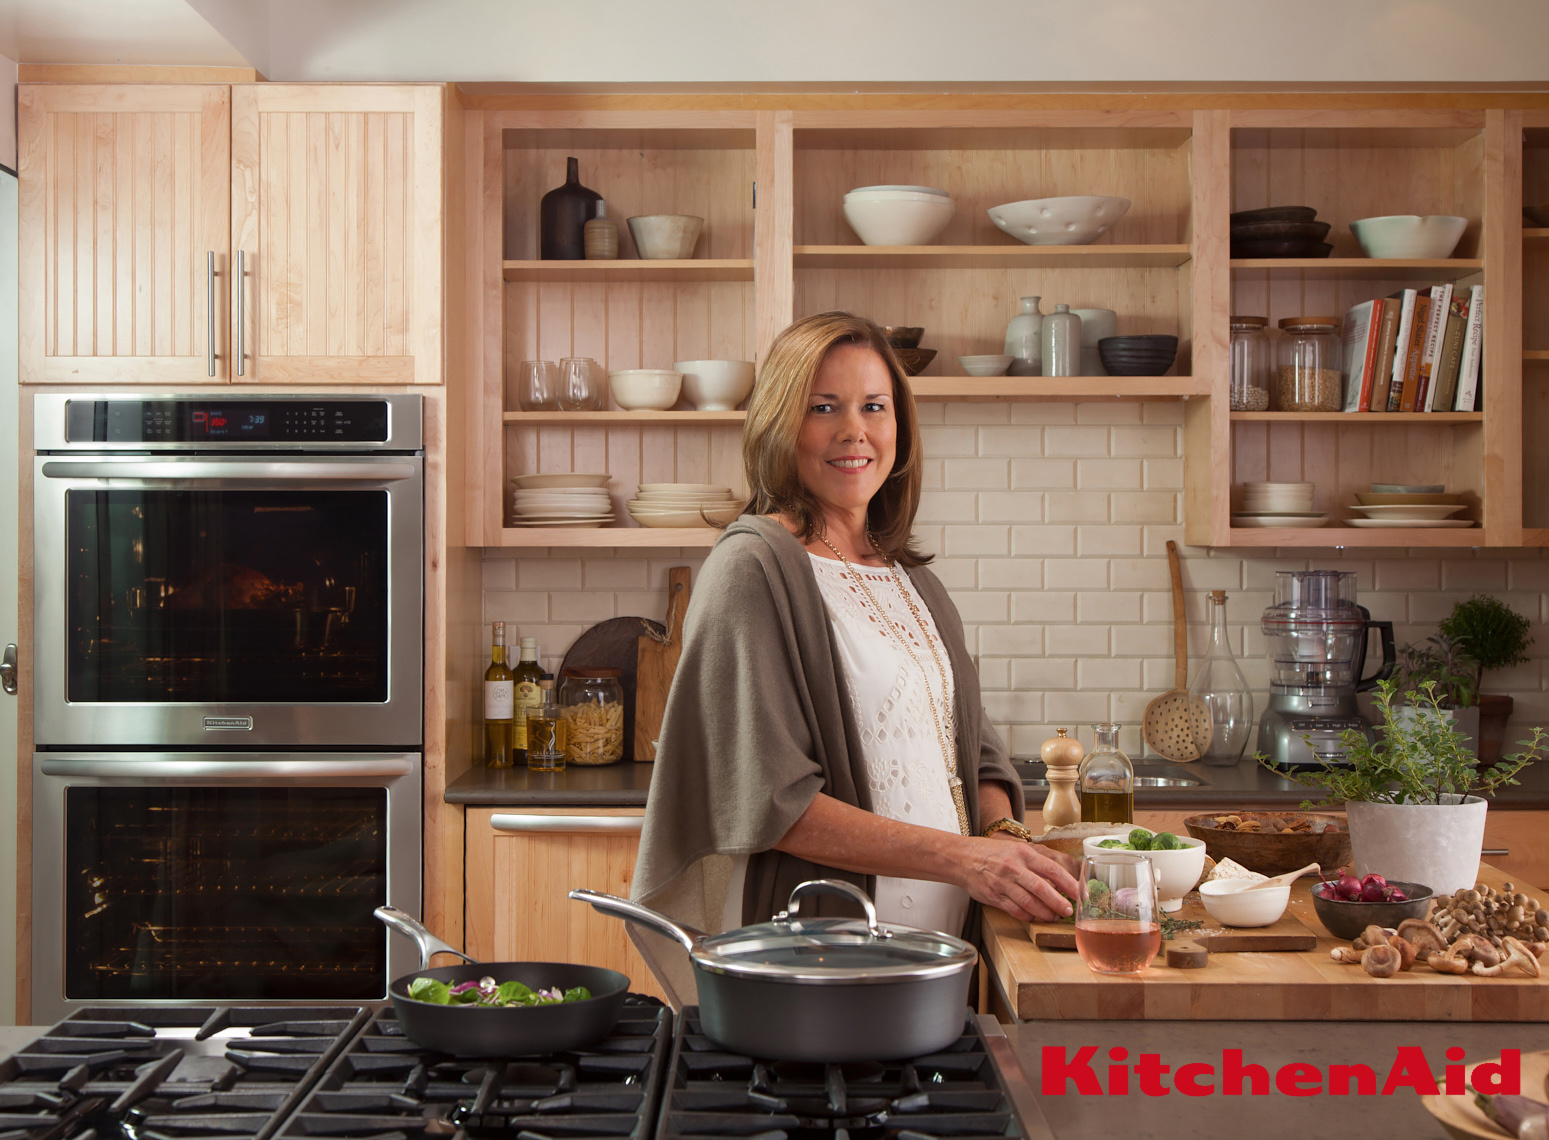 RD_KitchenAid_BA_MG_2097_F